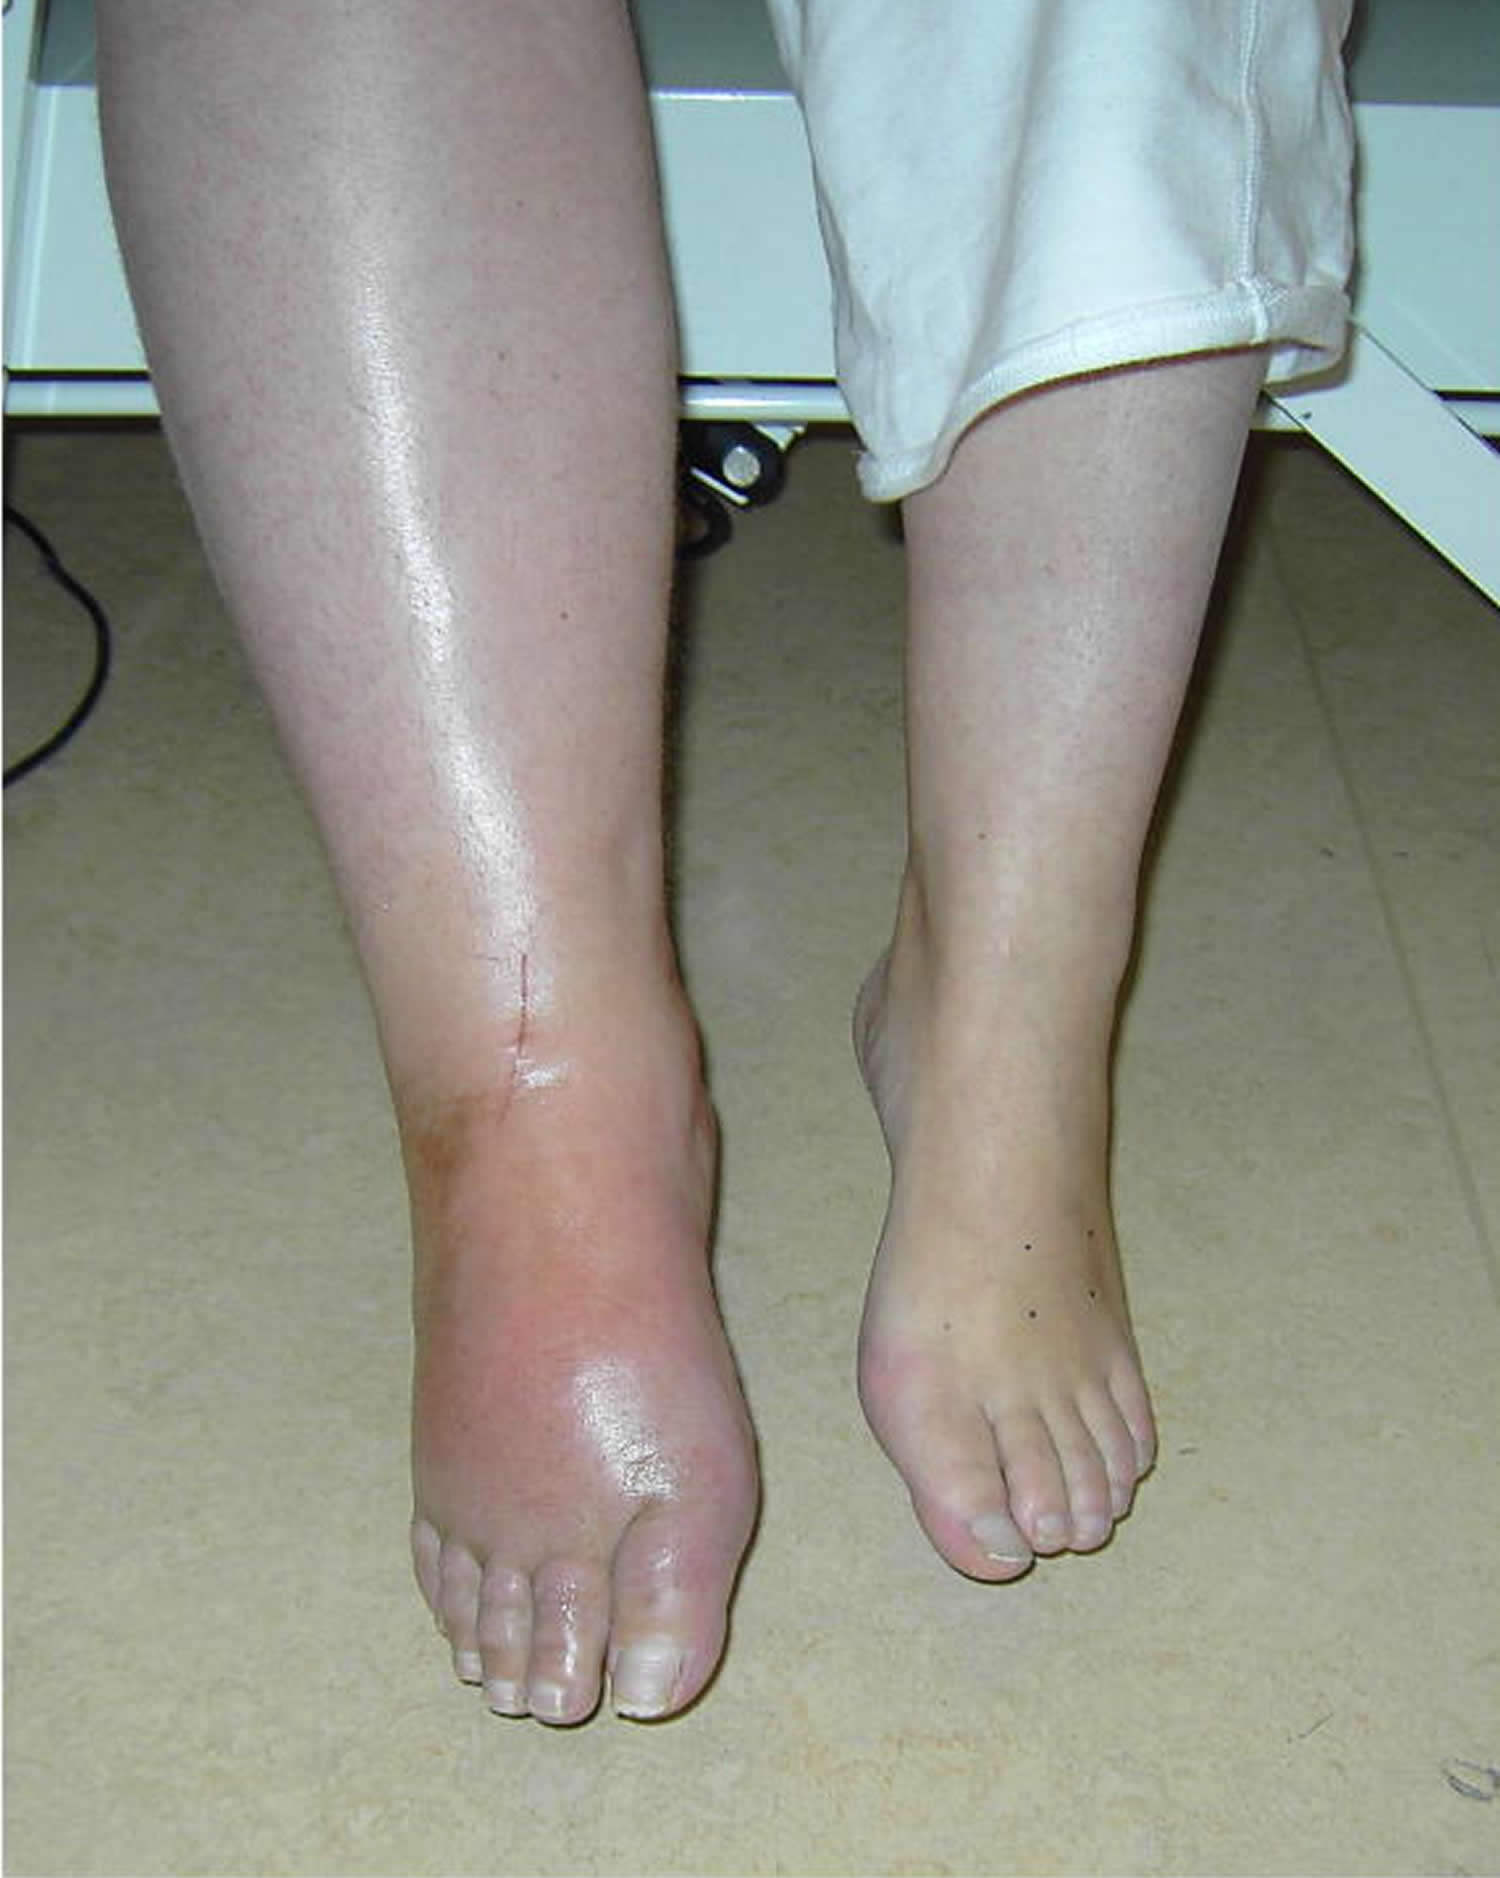 What is Zudecks syndrome